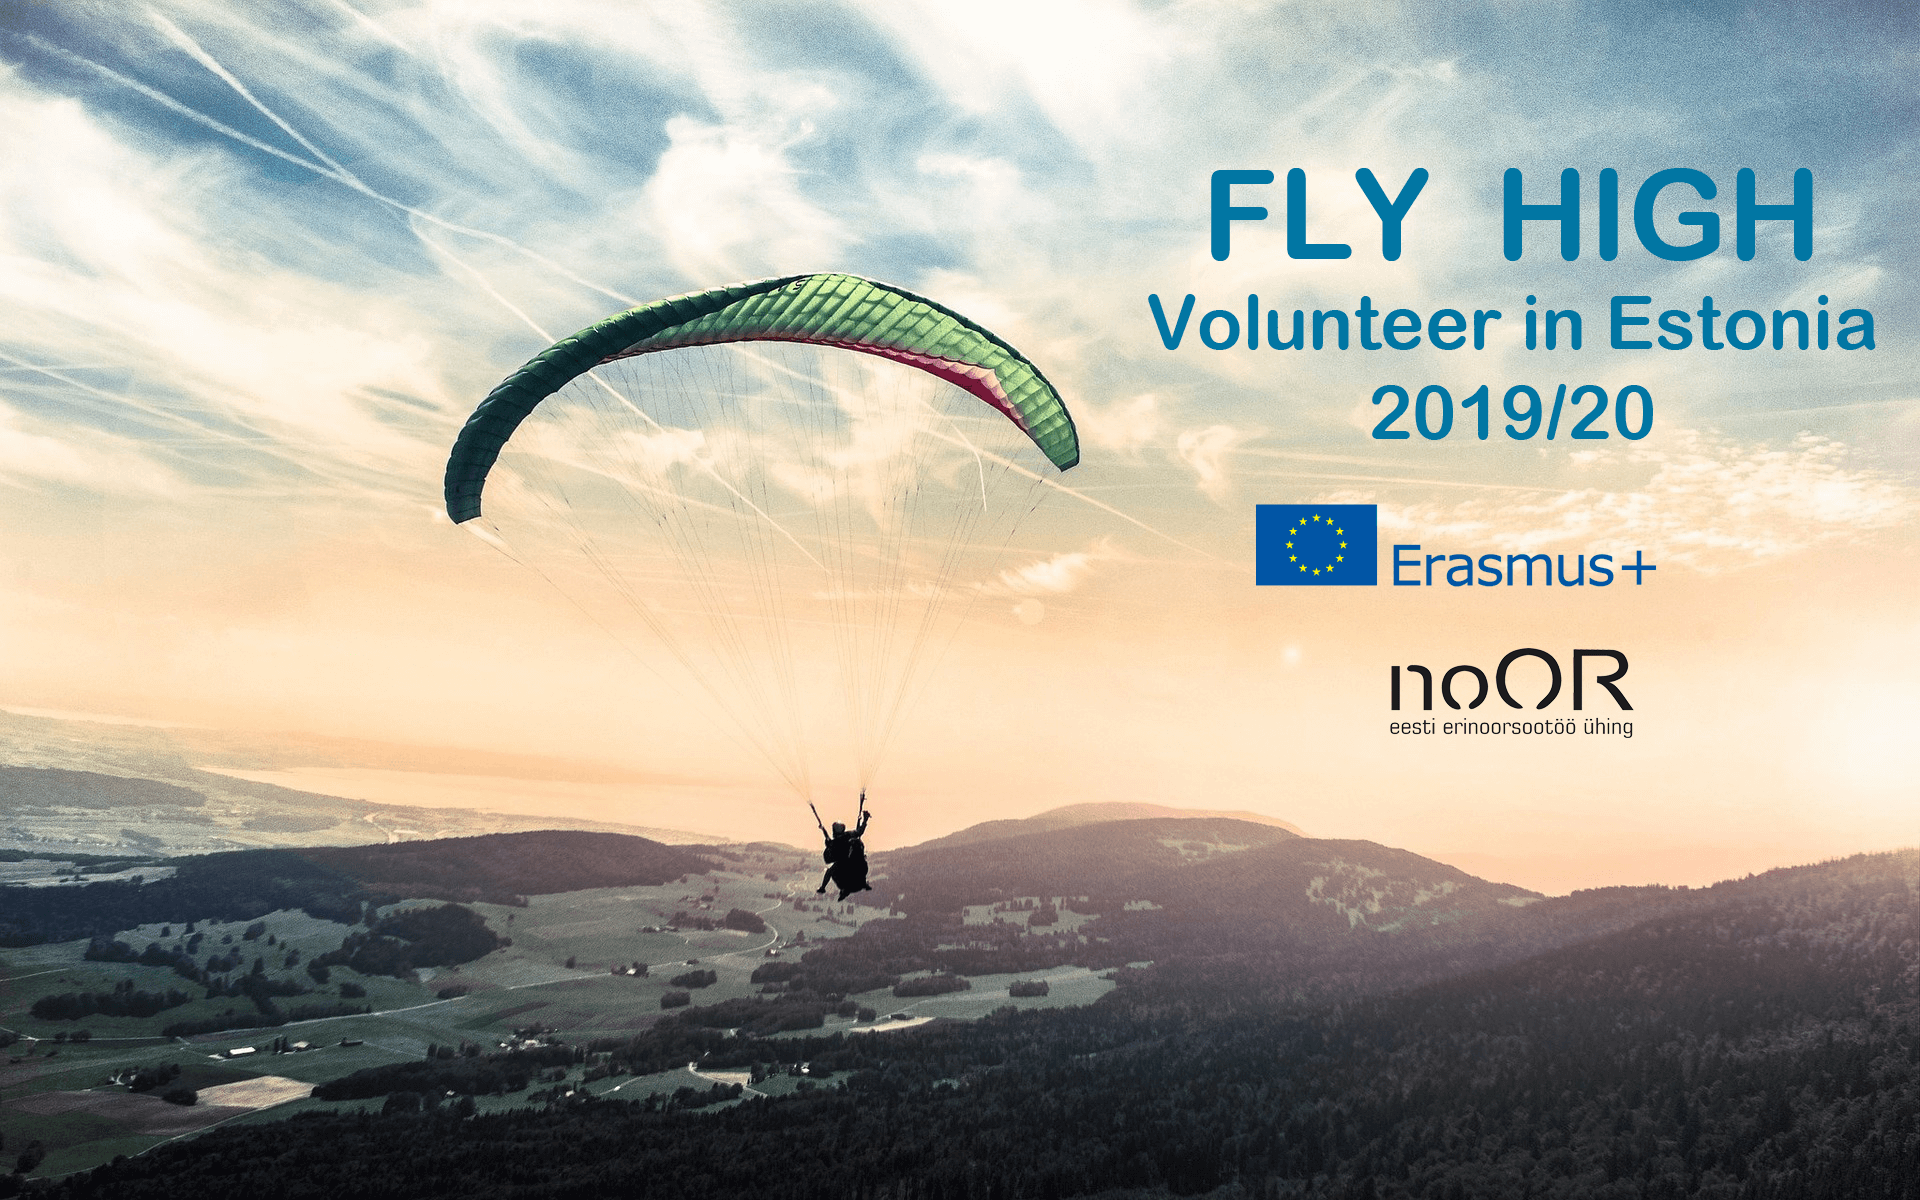 FLY HIGH VOLUNTEER IN ESTONIA 2019/2020 ERASMUS+